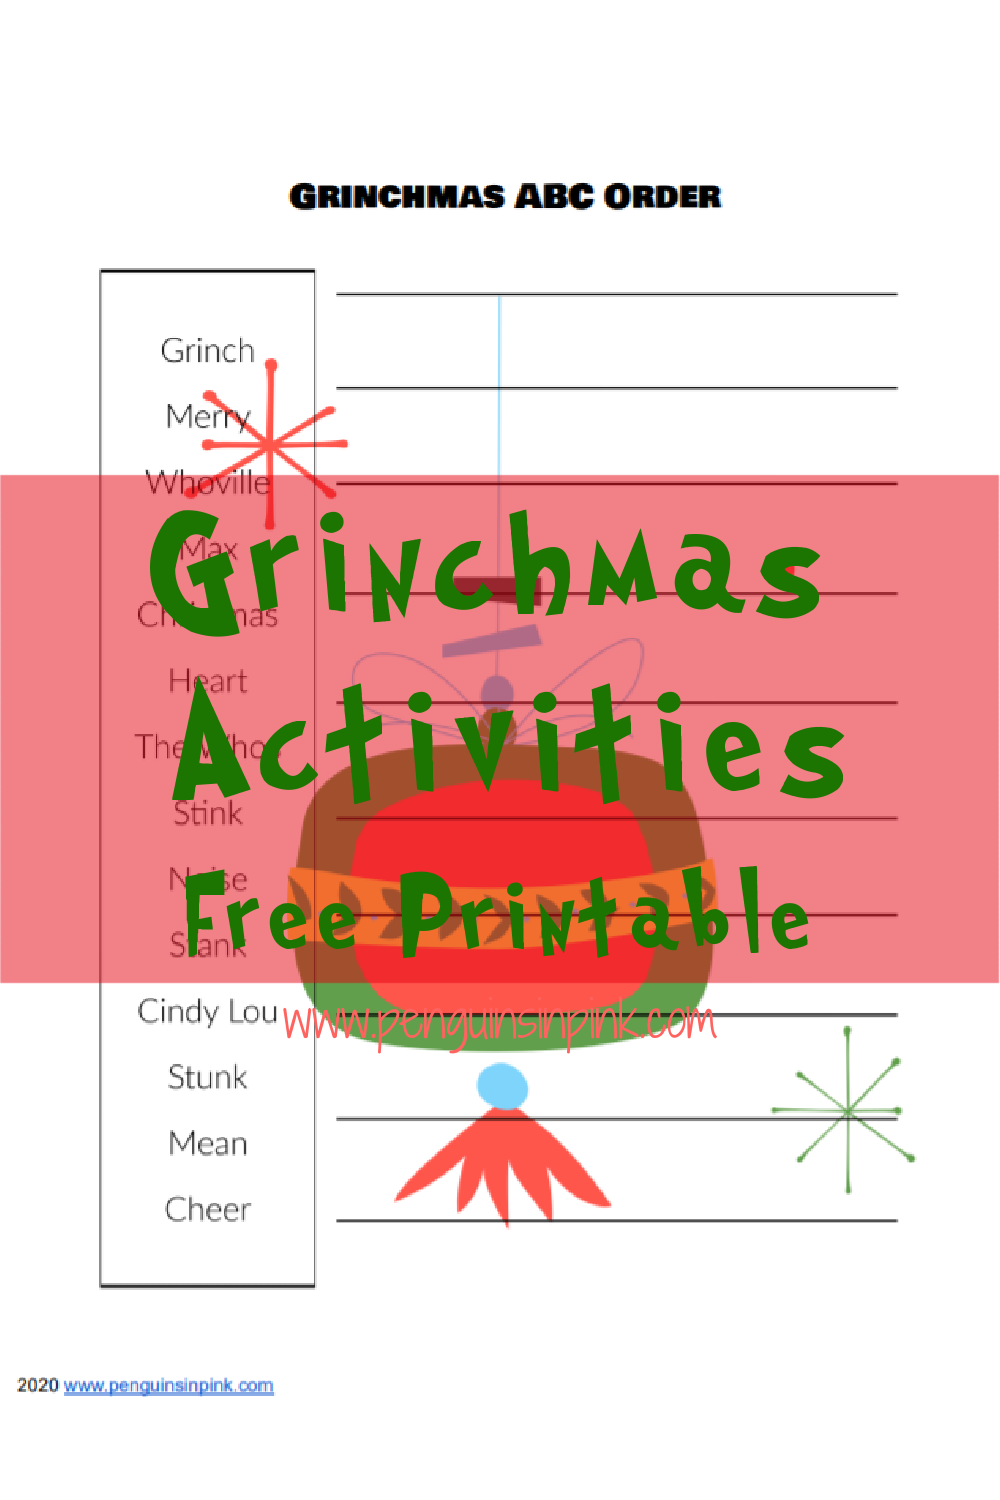 This FREE Printable Pack includes a Grinchmas Word Scramble and an ABC Order. Word scrambles and ABC order are easy yet fun activities that sneak in some reading and literacy skills.